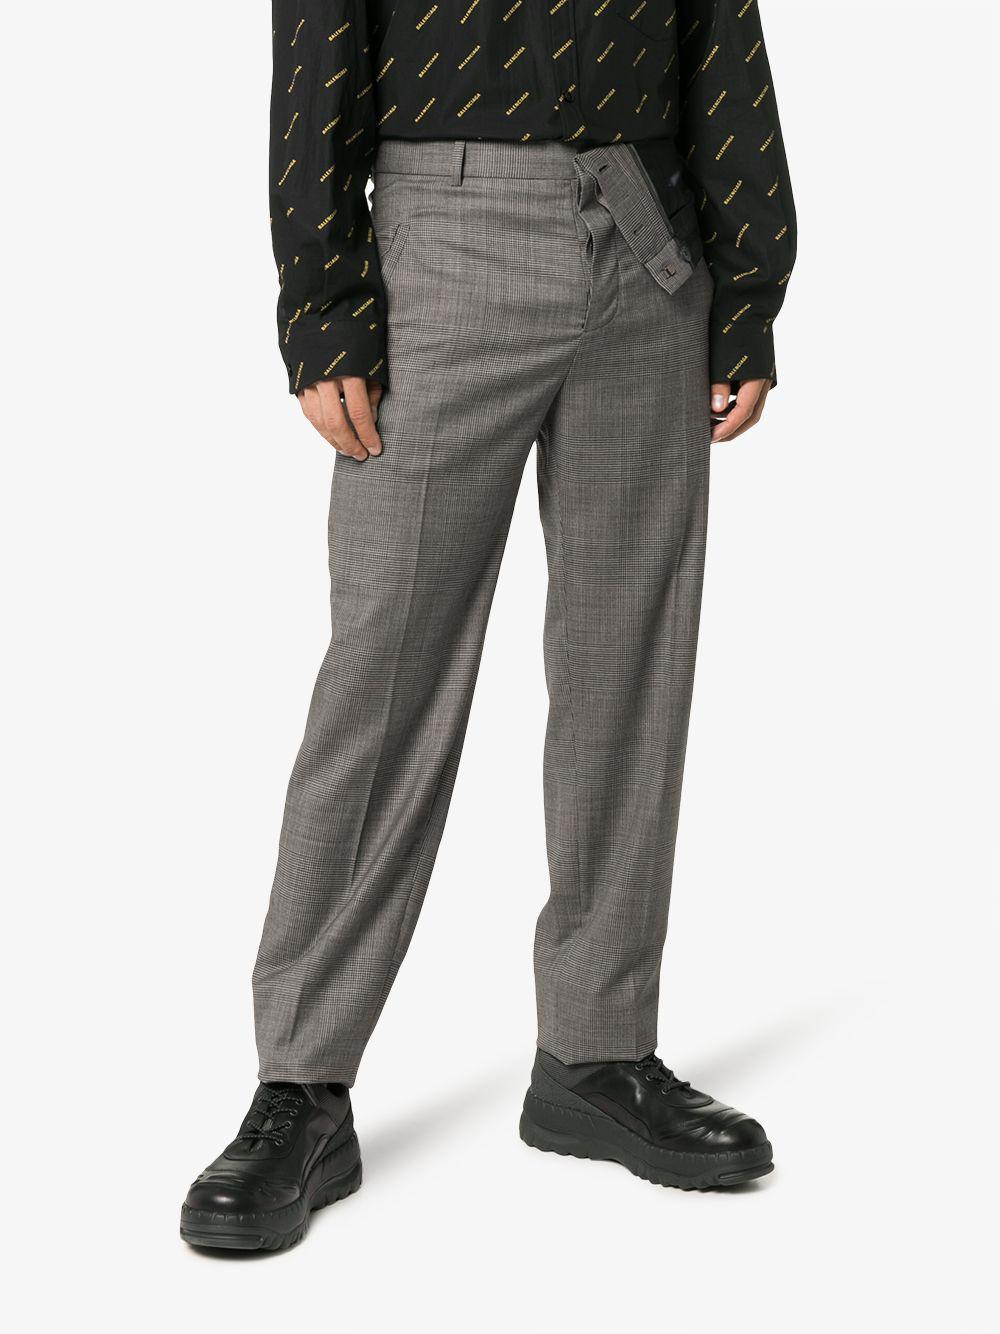 Y. Project Asymmetric Wool-blend Trousers in Grey (Grey) for Men - Save 60%